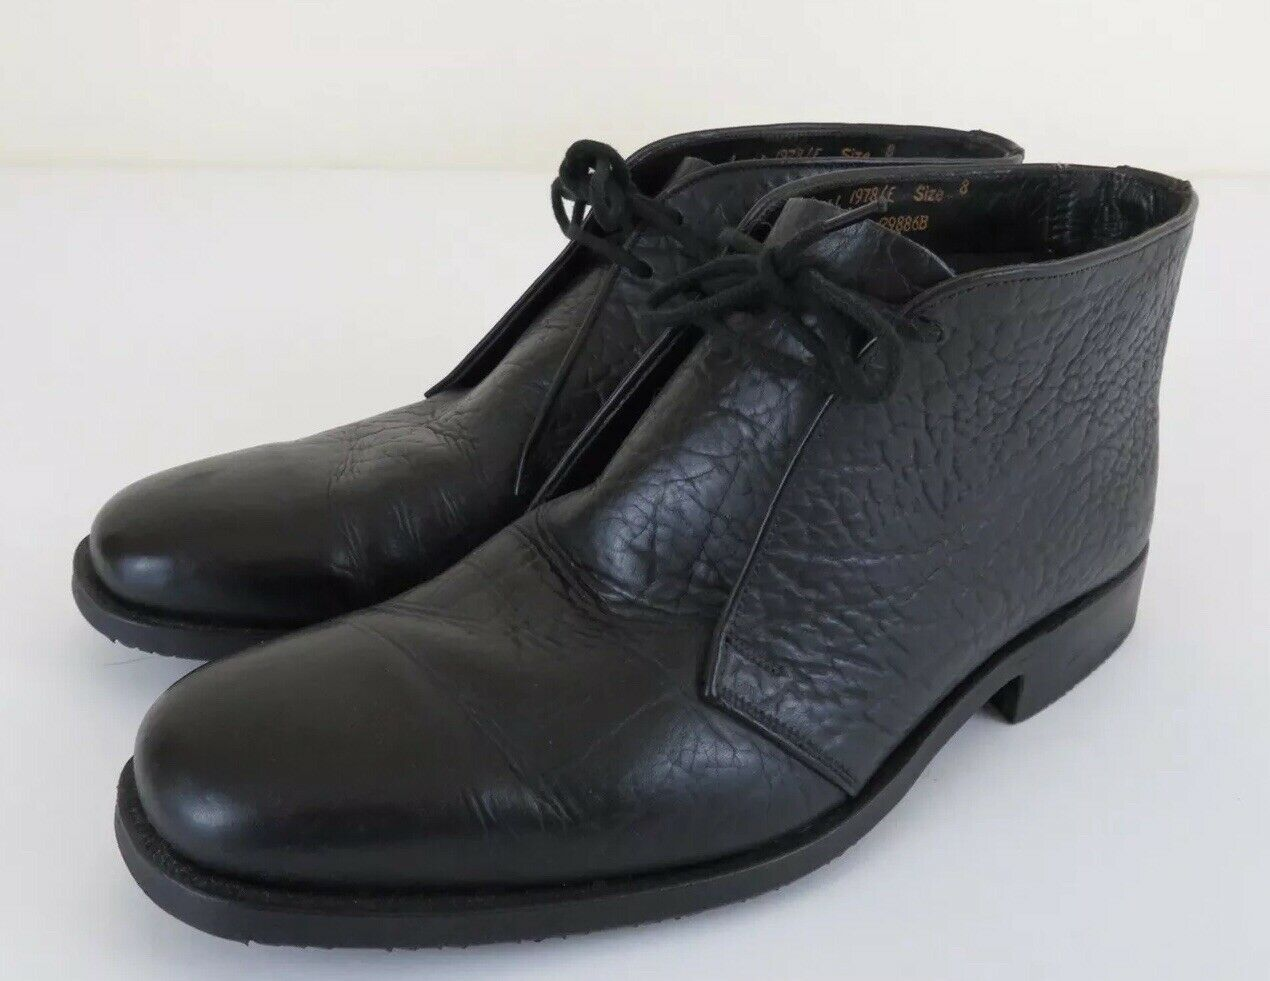 Royal Tweed Cheaney X Church's Mens Size 8 E Black Leather Chukka Ankle Boots